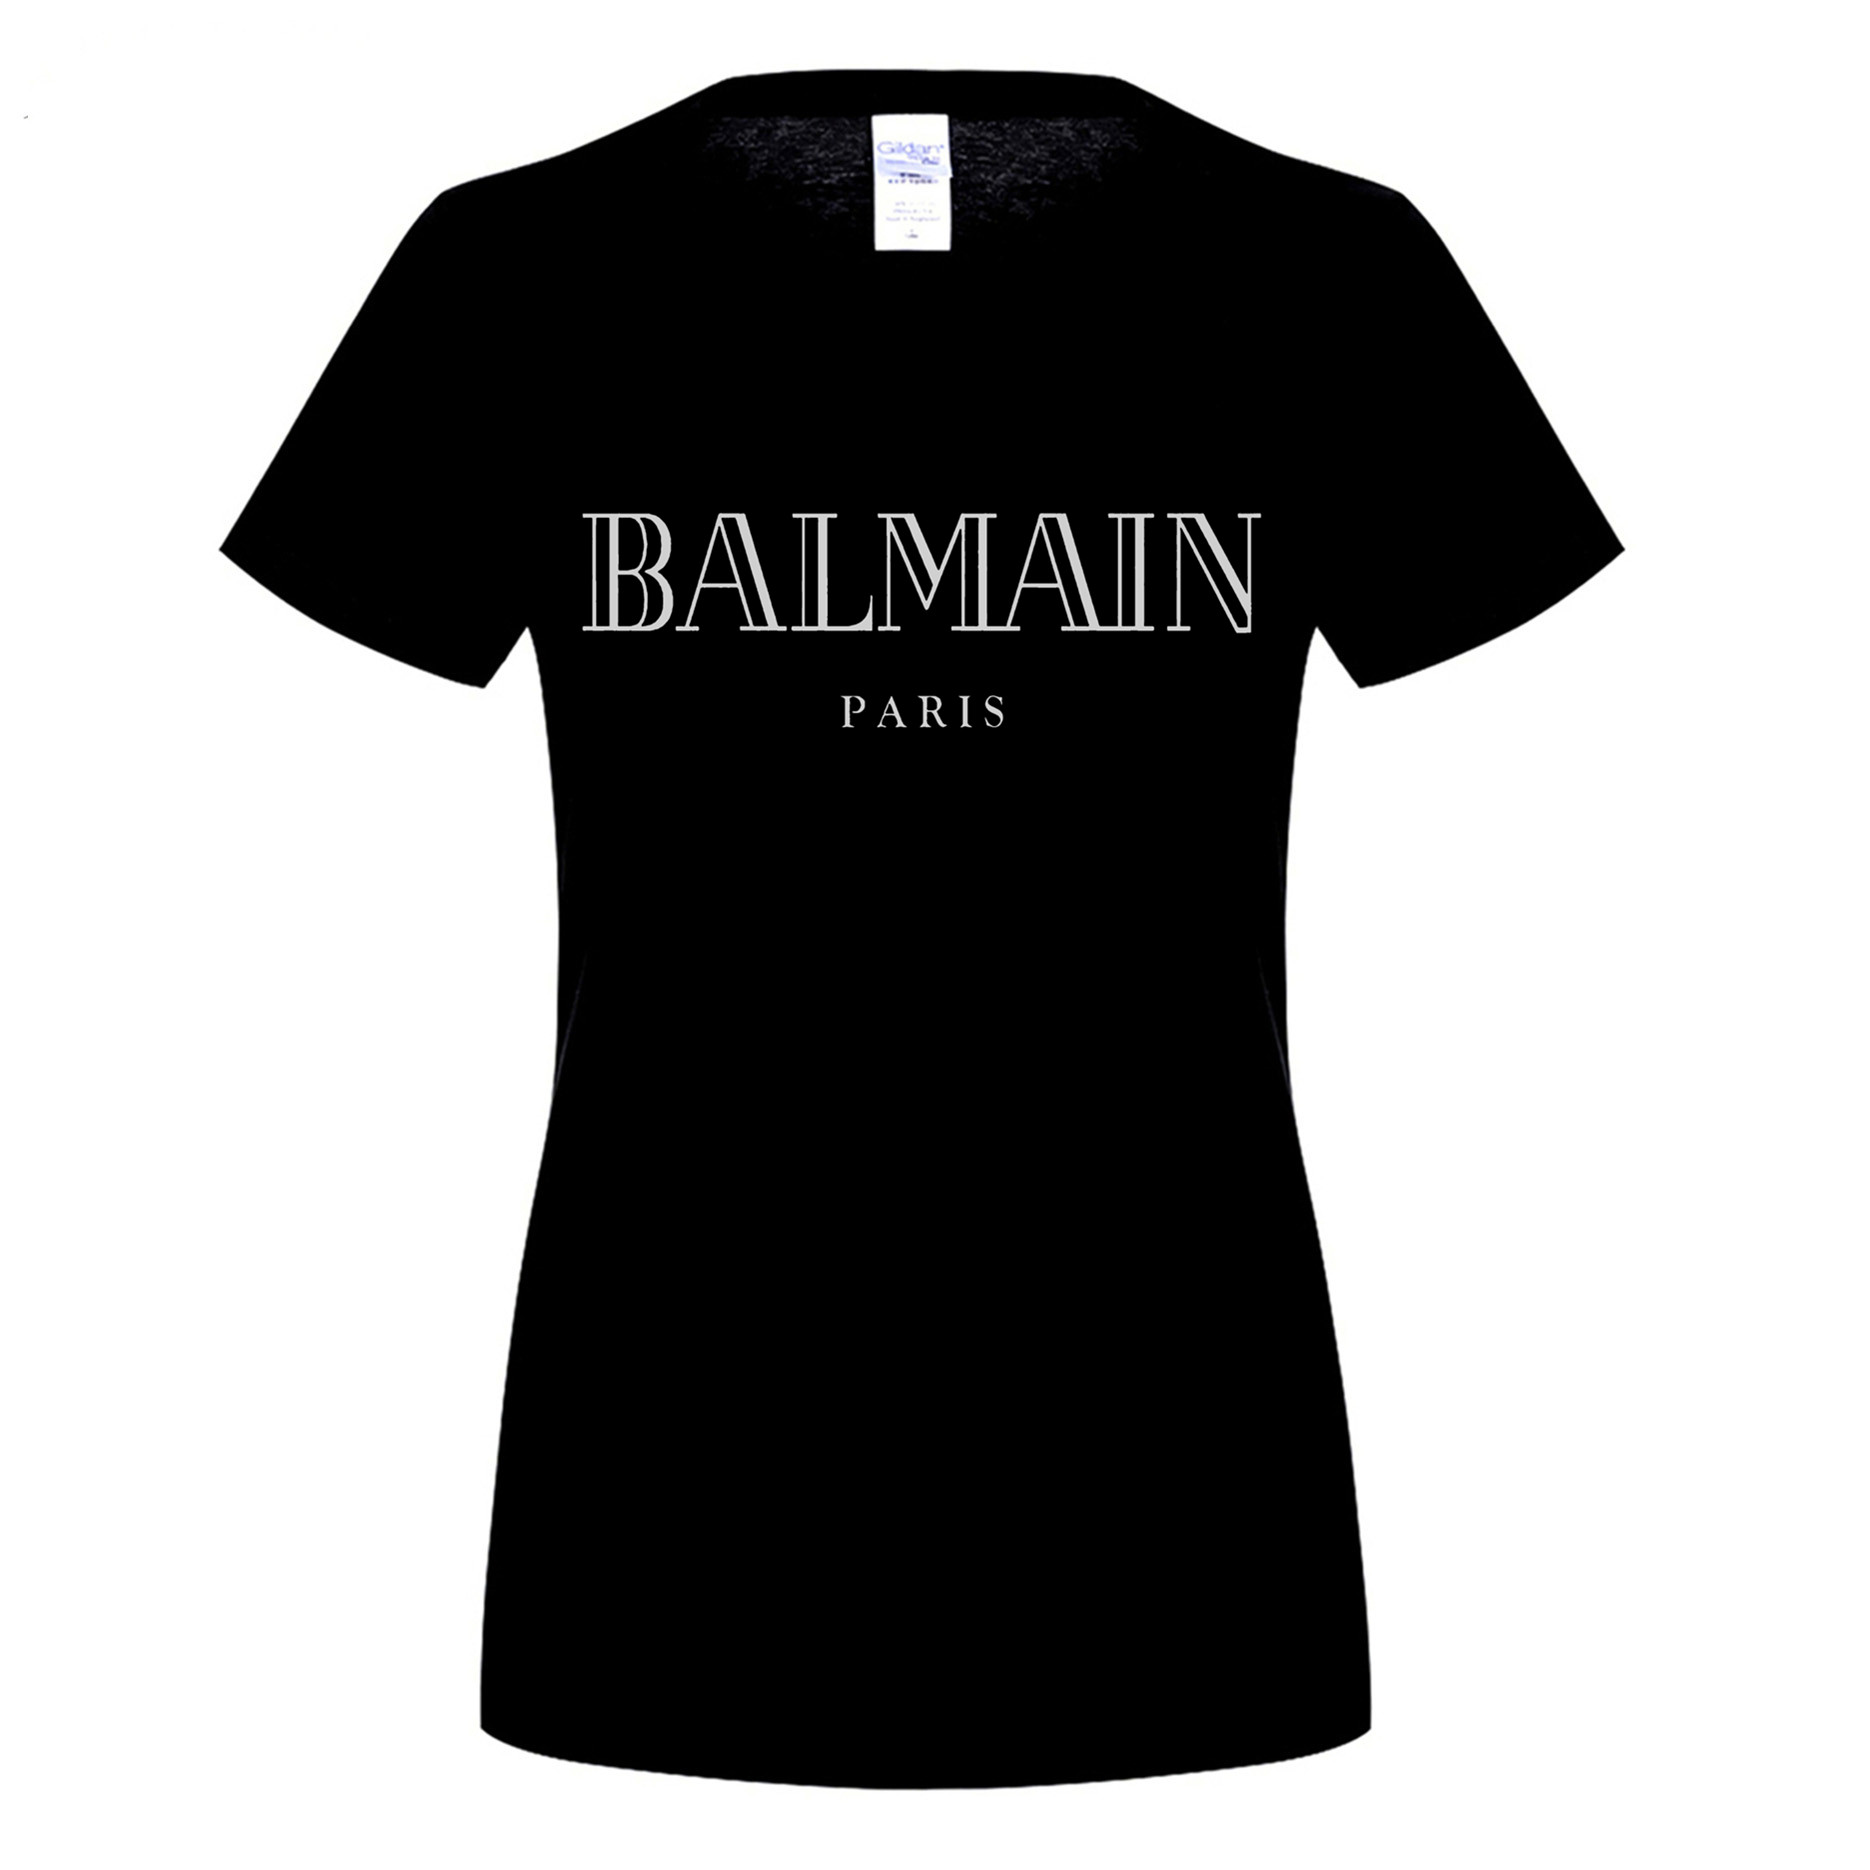 balmain shirt Balmain Paris shirt-in T-Shirts from Men's Clothing on Aliexpress.com |  Alibaba Group